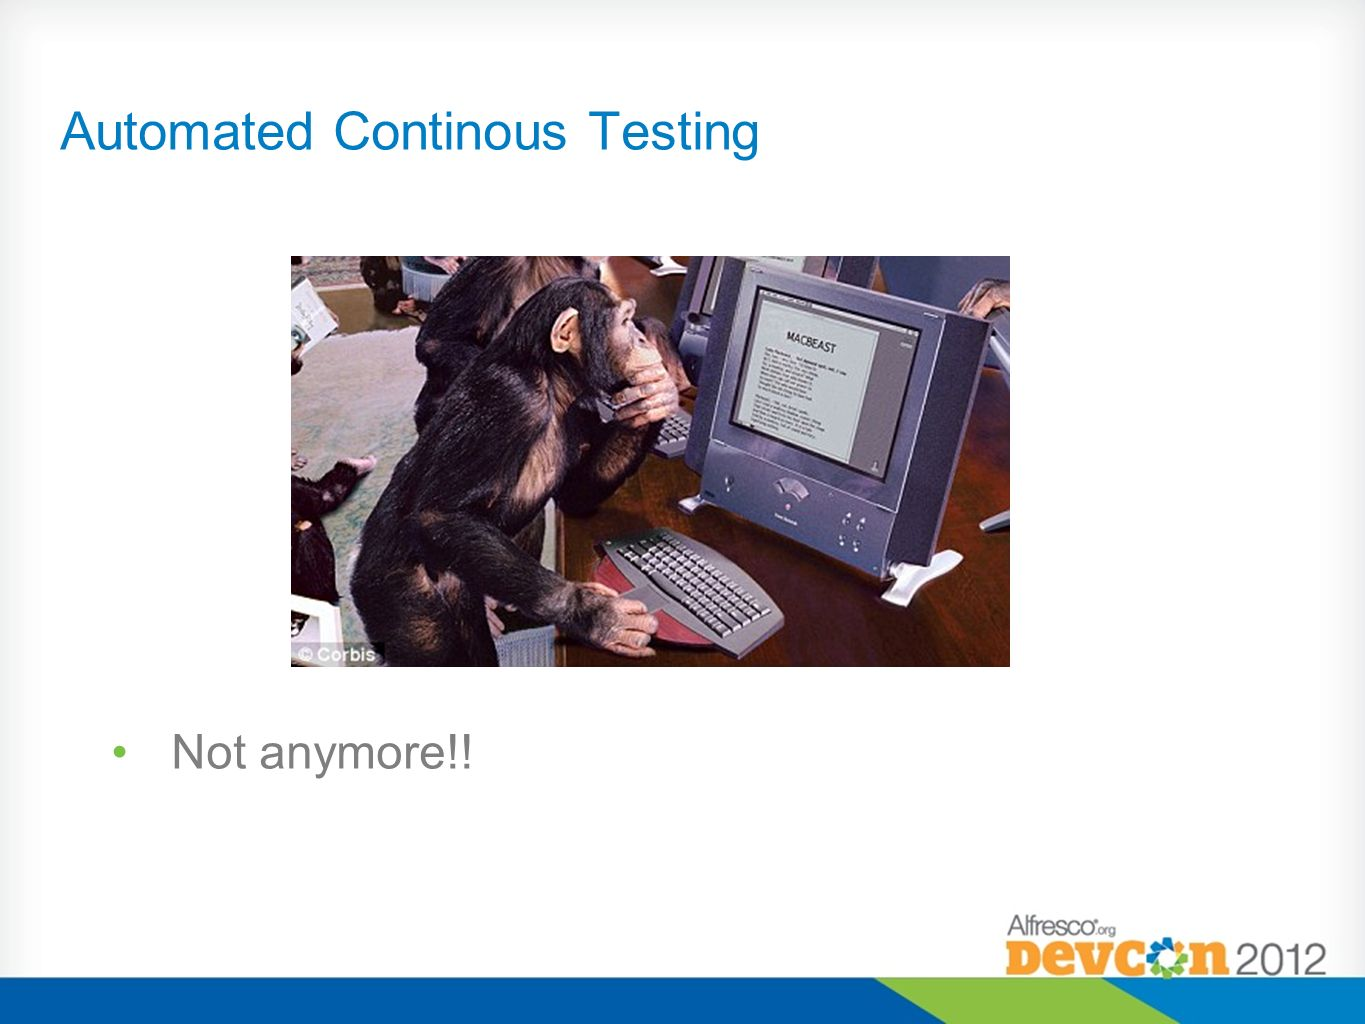 Automated Continous Testing - Algorithm